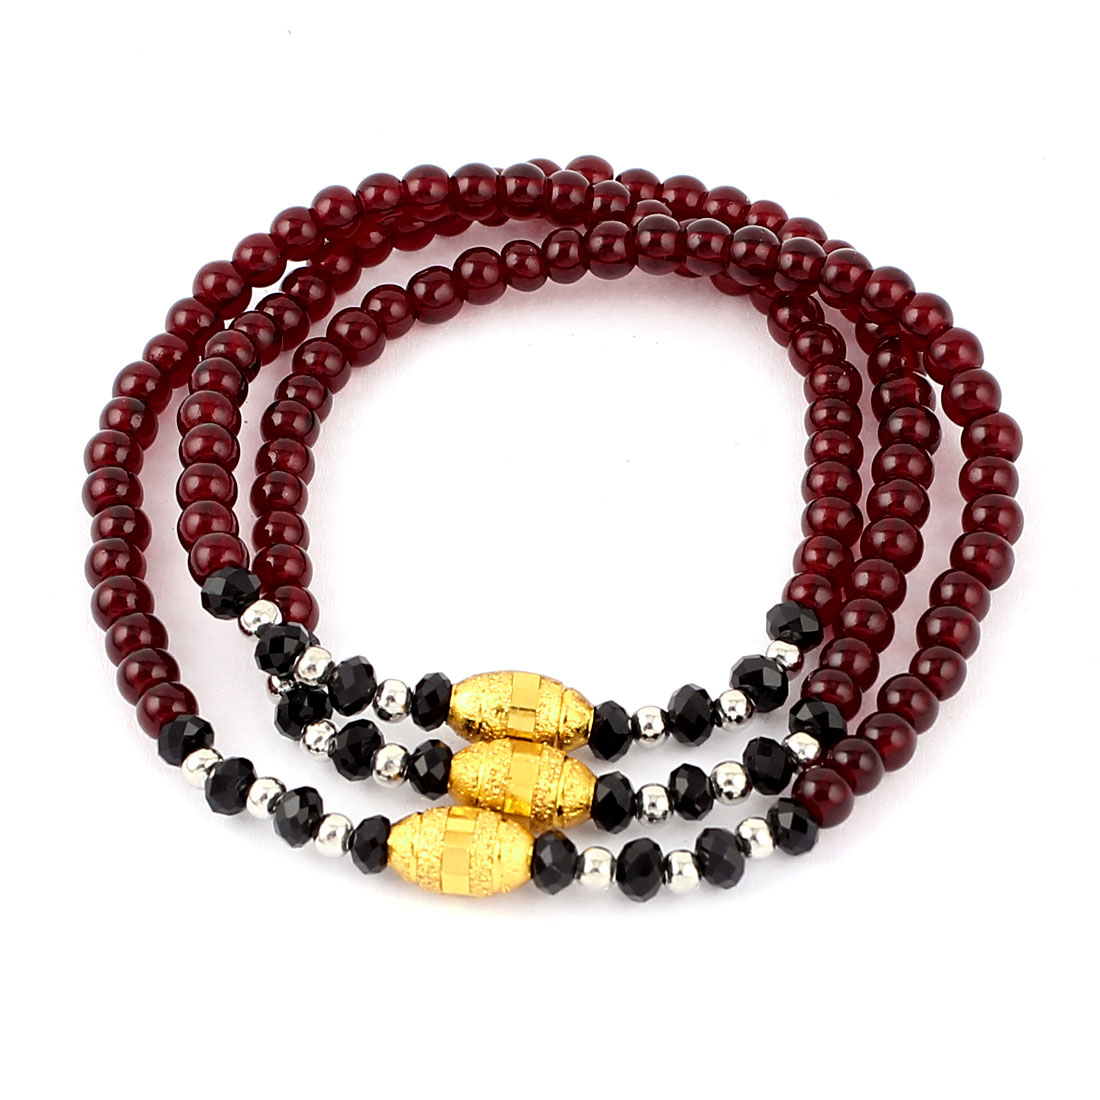 Women Facted Round Plastic Beads Decor Linked Bracelet Bangle Carmine